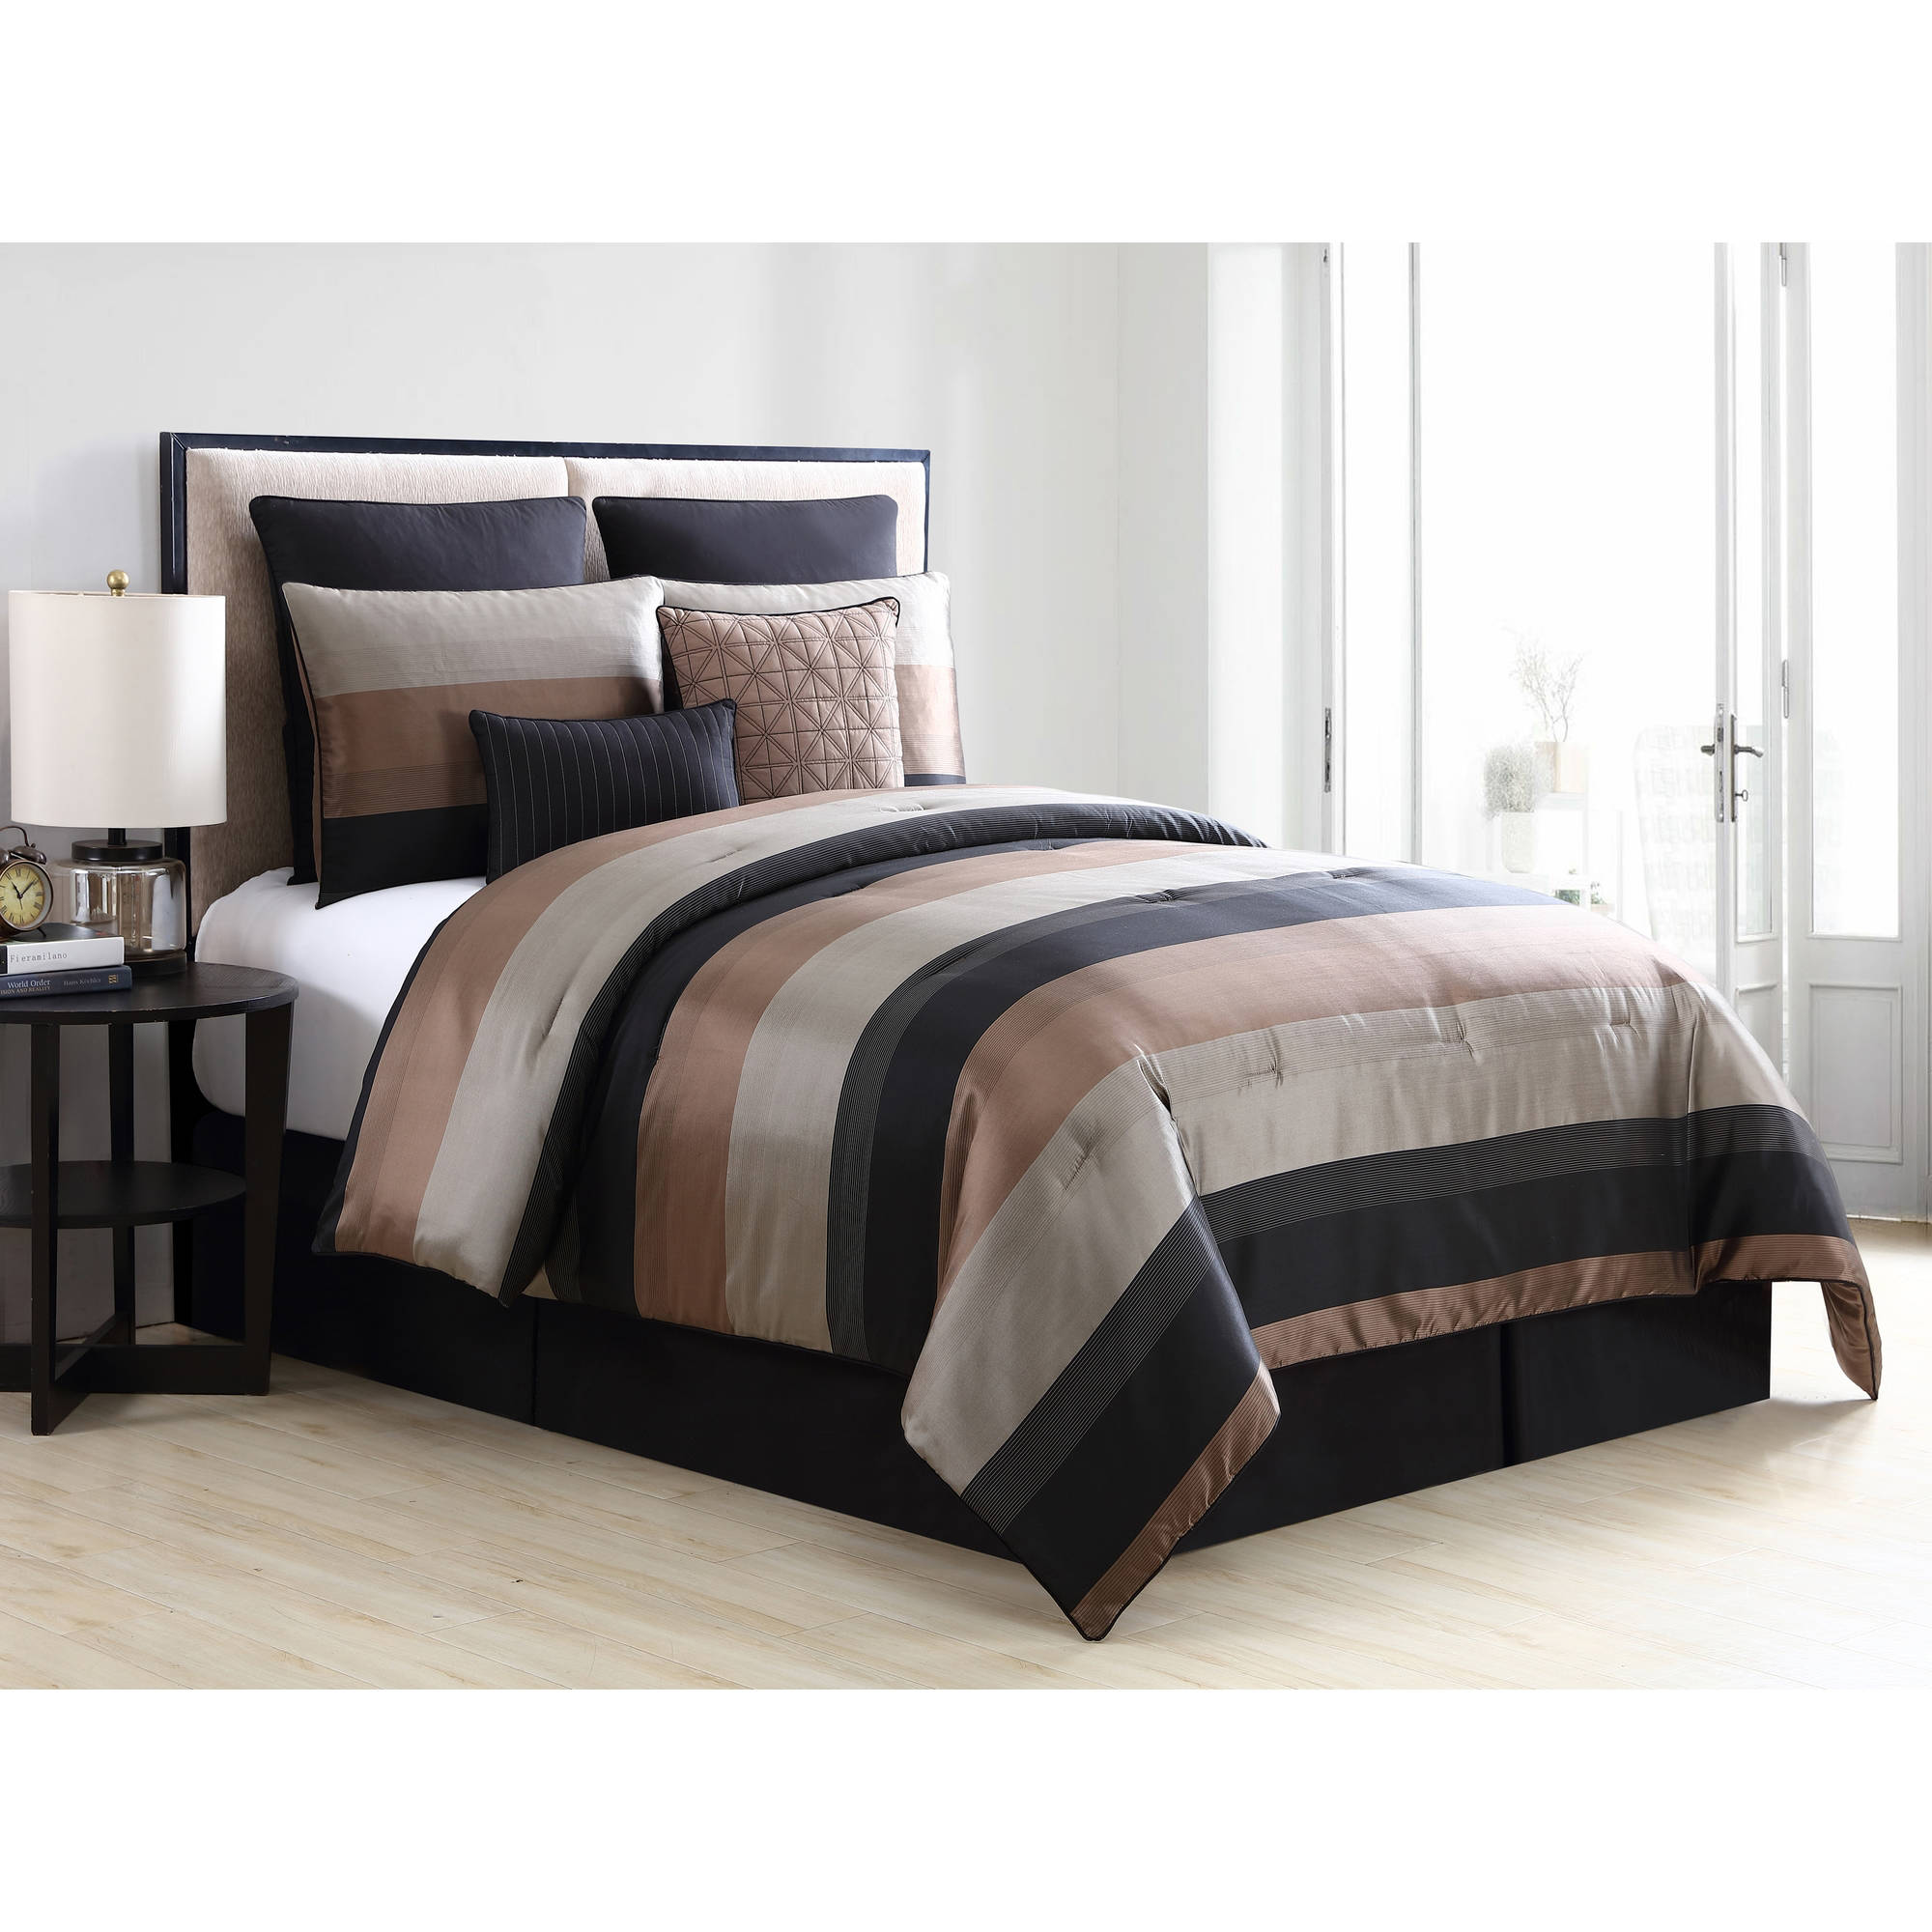 VCNY Home Black/Gold Metallic Maxwell Stripe 6-/8-Piece Bedding Comforter Set, Euro Shams and Decorative Pillows Included